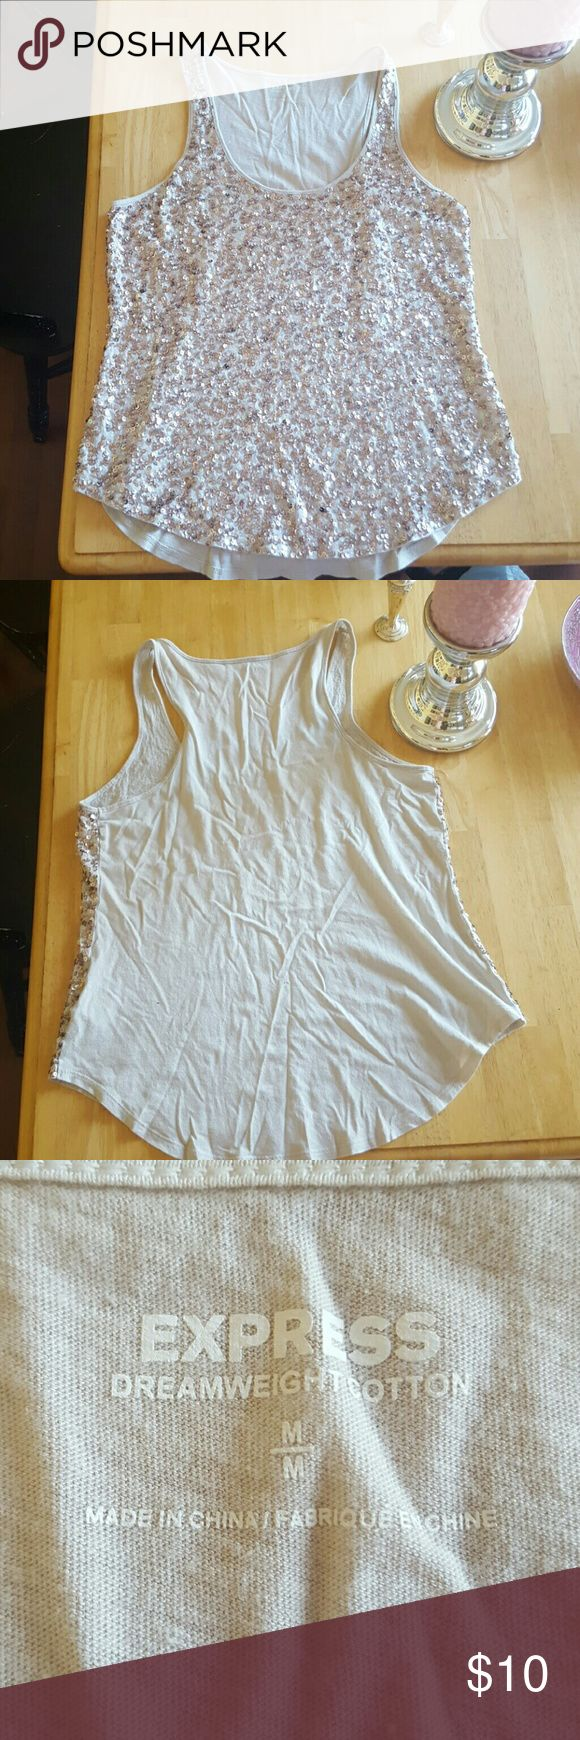 Sequin tank top Cream material with pale pink sequins - they shine almost silver. Express Tops Tank Tops